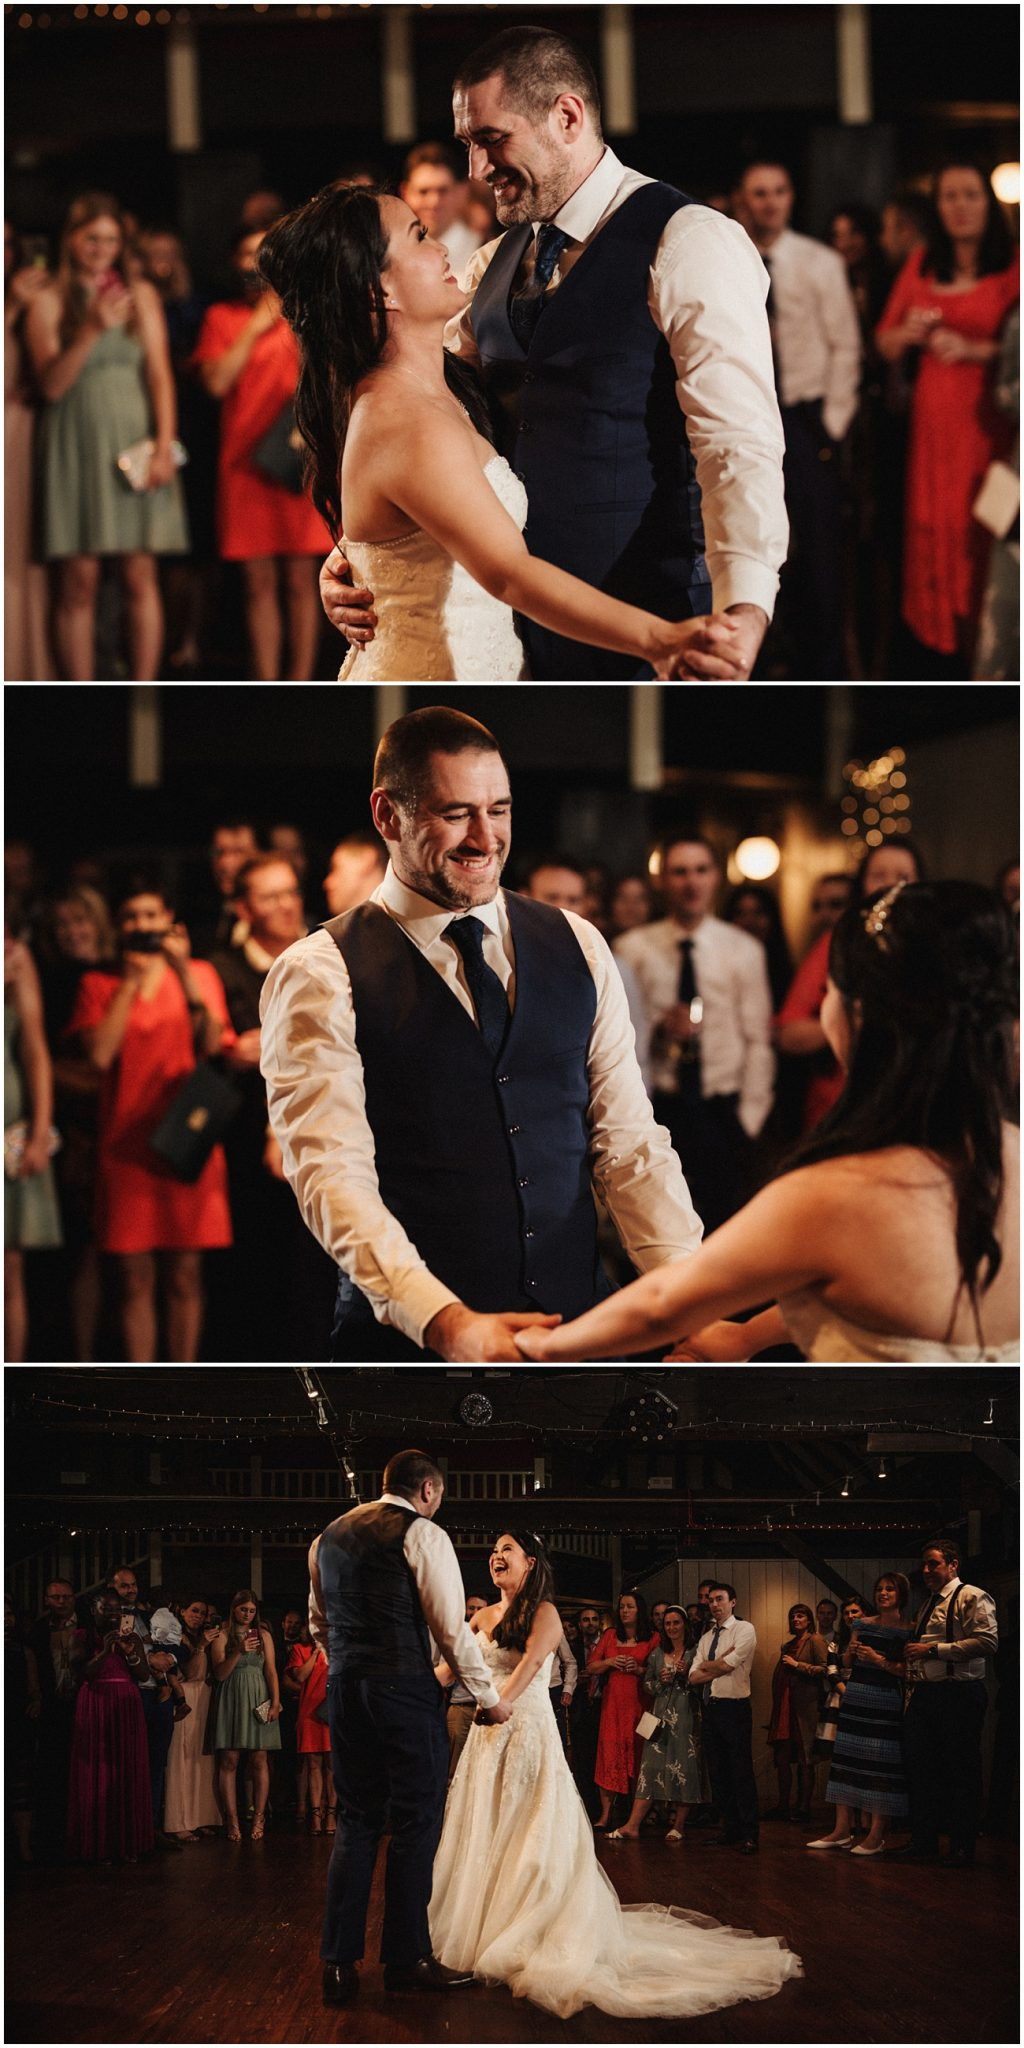 The first dance for the bride and groom